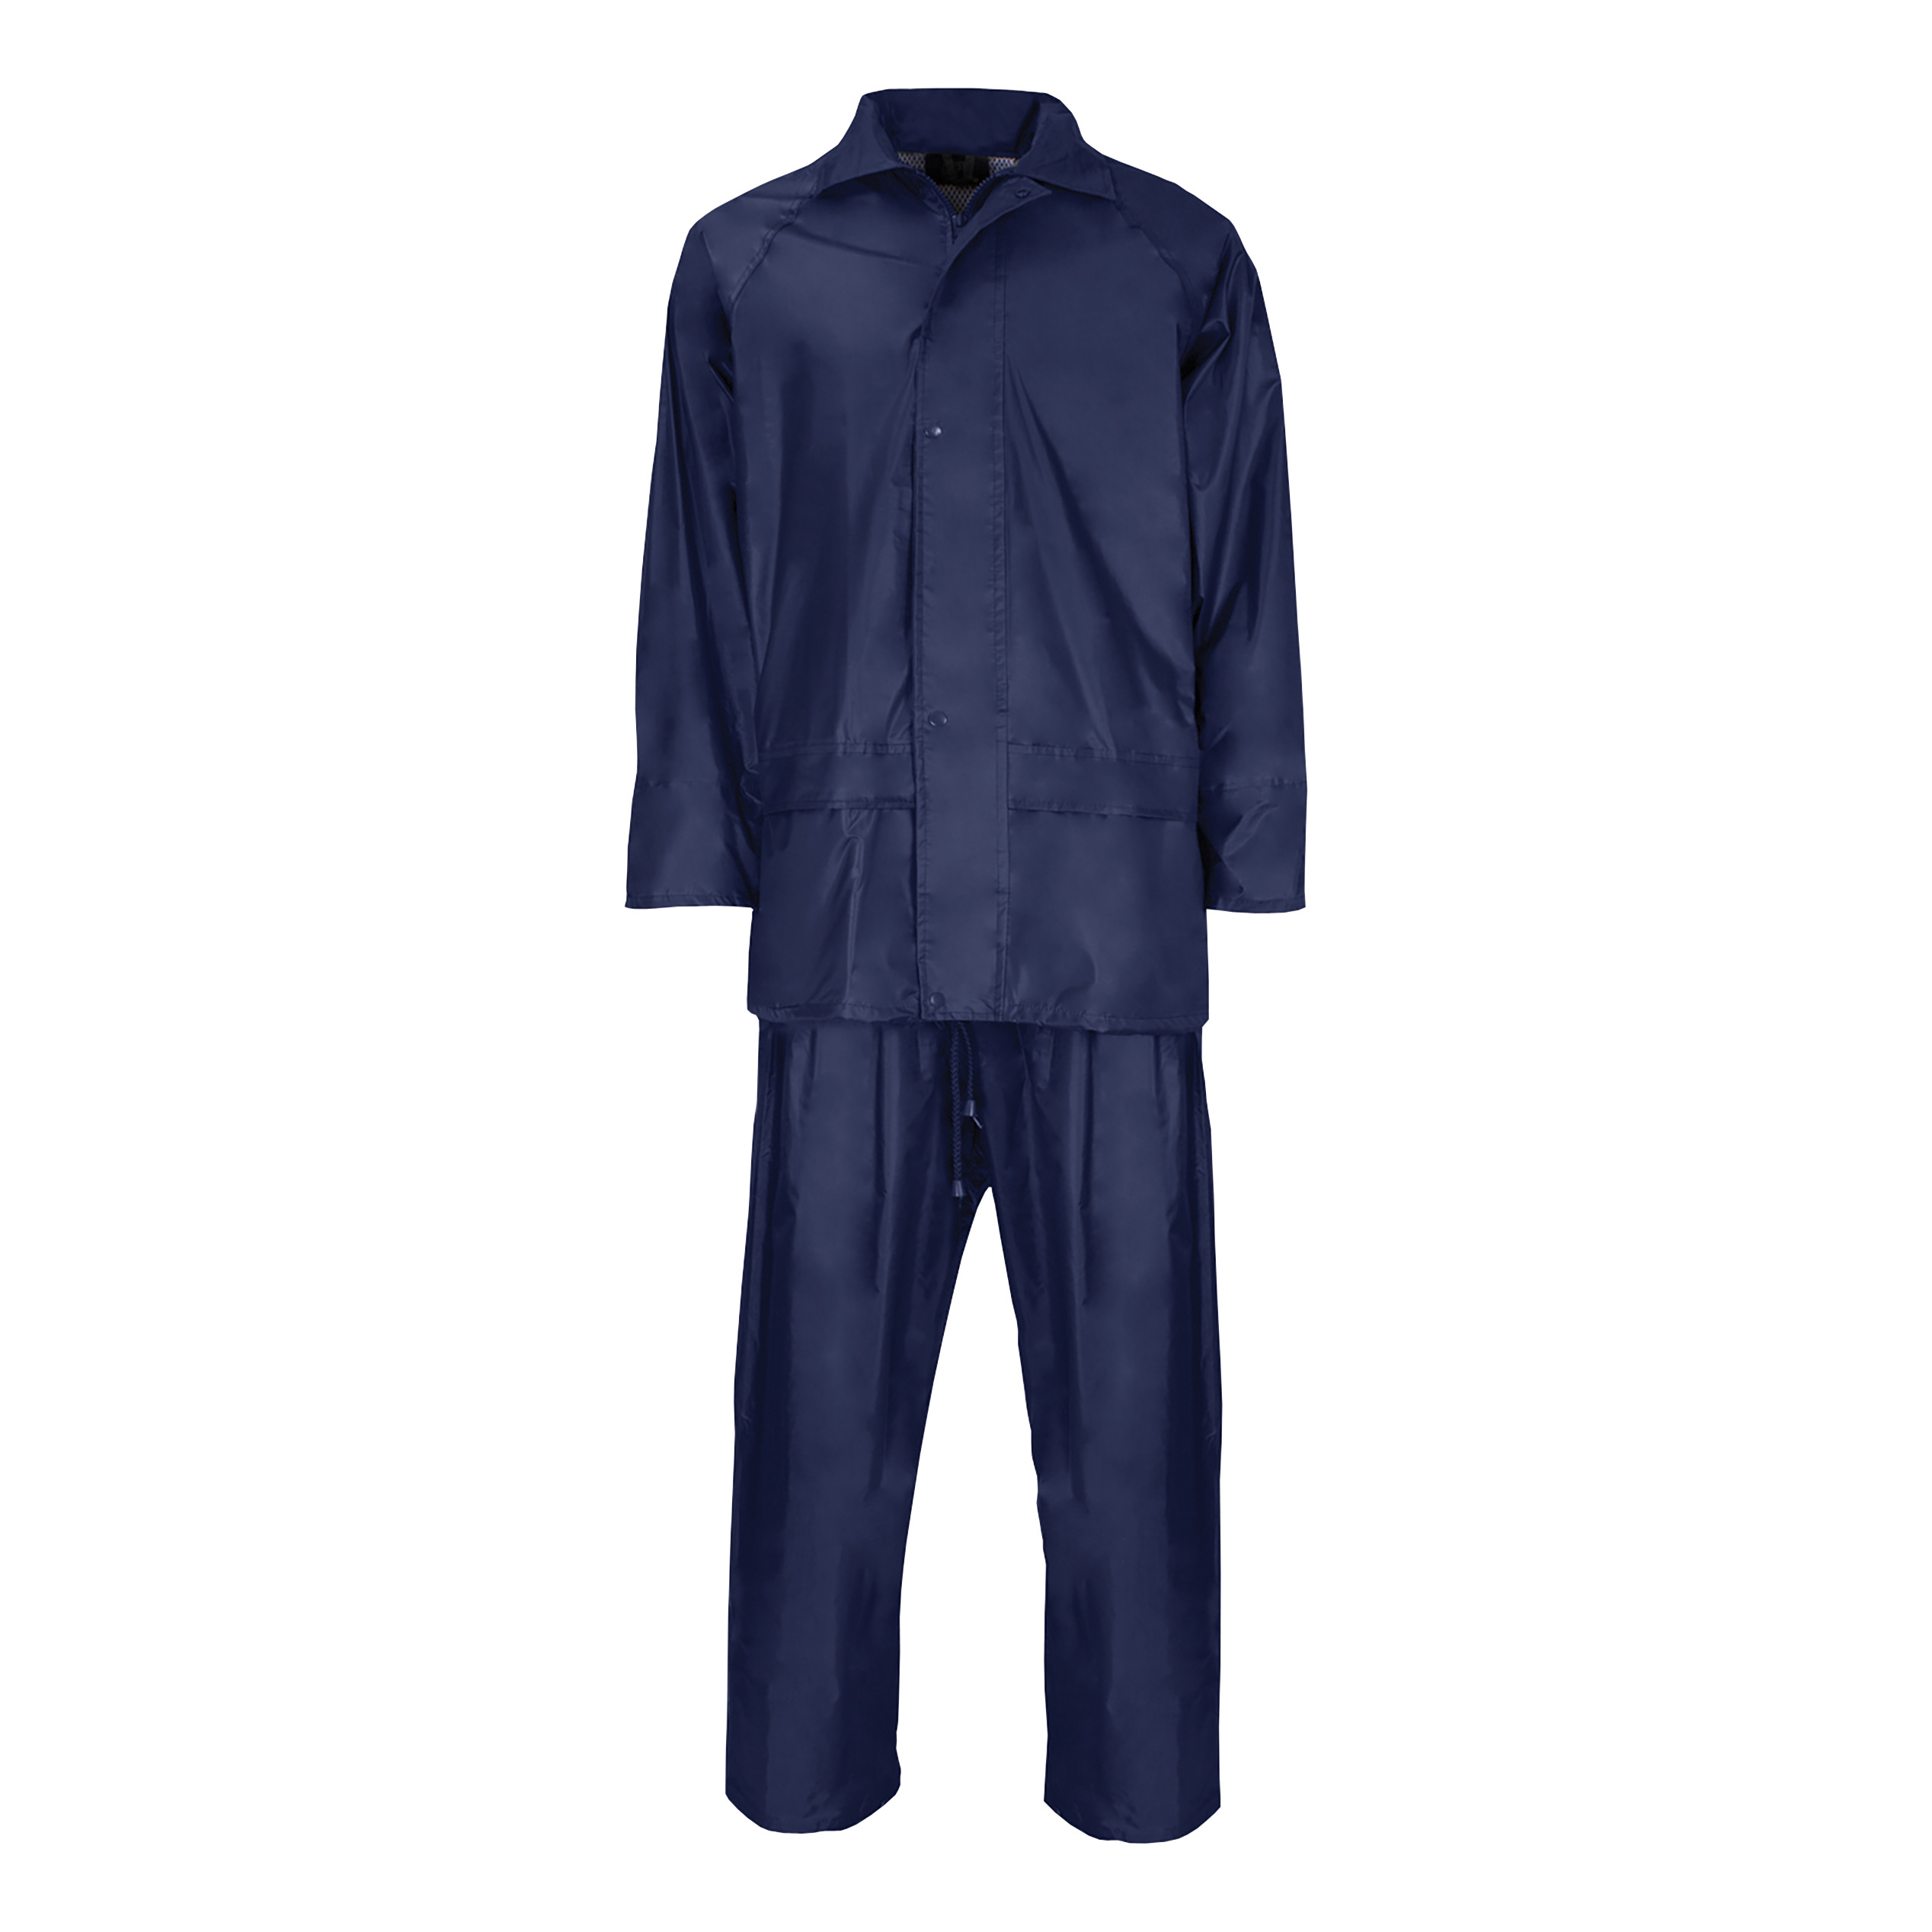 Rainsuit Poly/PVC with Elasticated Waisted Trousers 4XL Navy Ref NBDSN4XL *Approx 3 Day Leadtime*